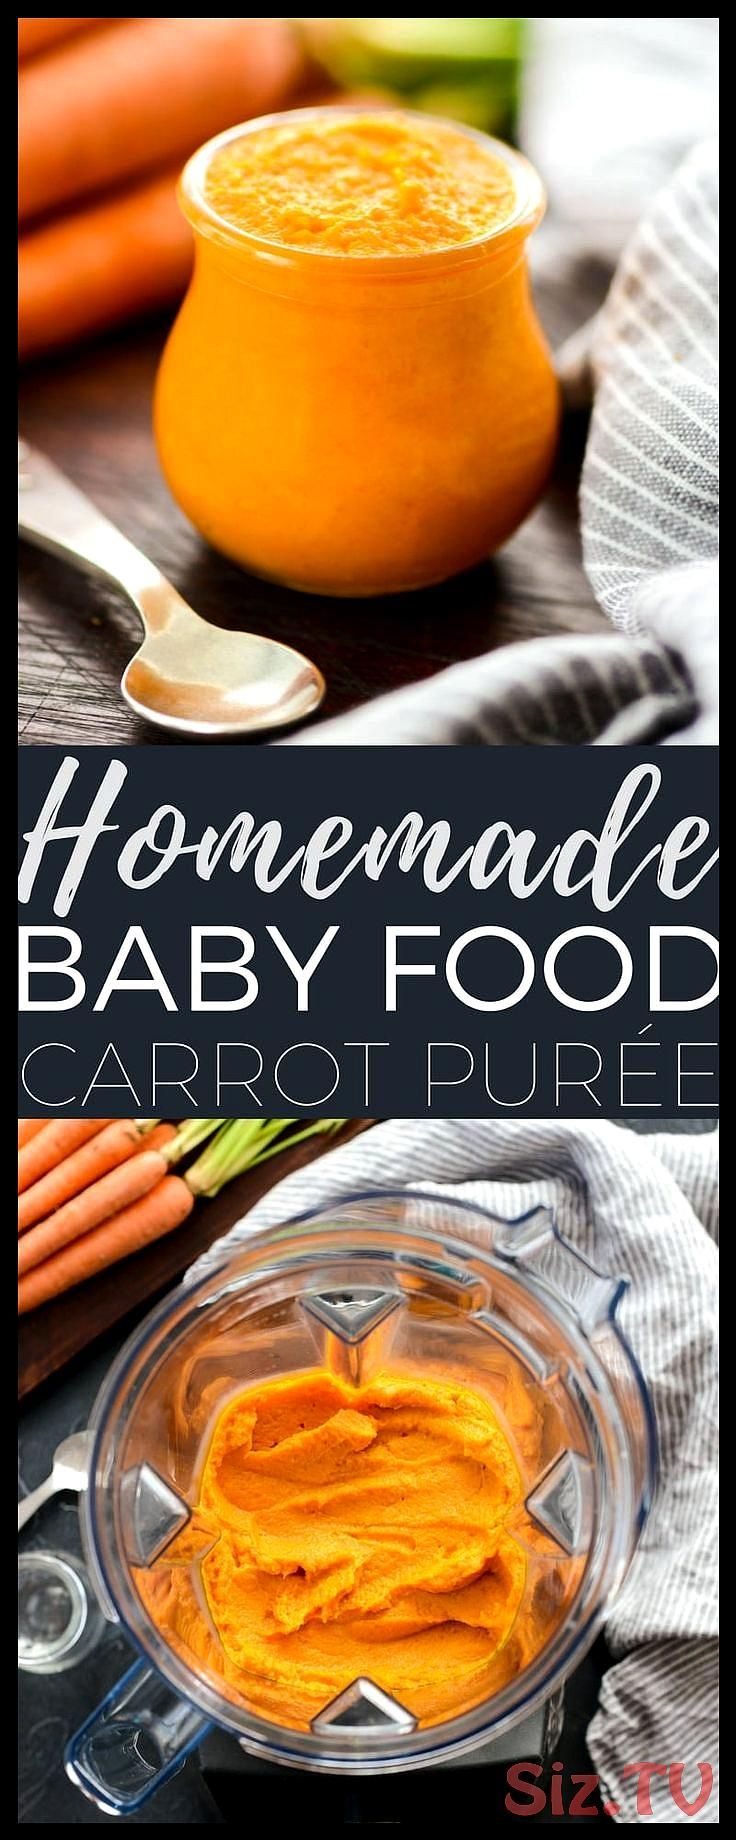 Homemade Baby Food Carrots are so easy to make and only contain two ingredients organic carrots and water Plus they taste worlds better than storeHomemade Baby Food Carro...